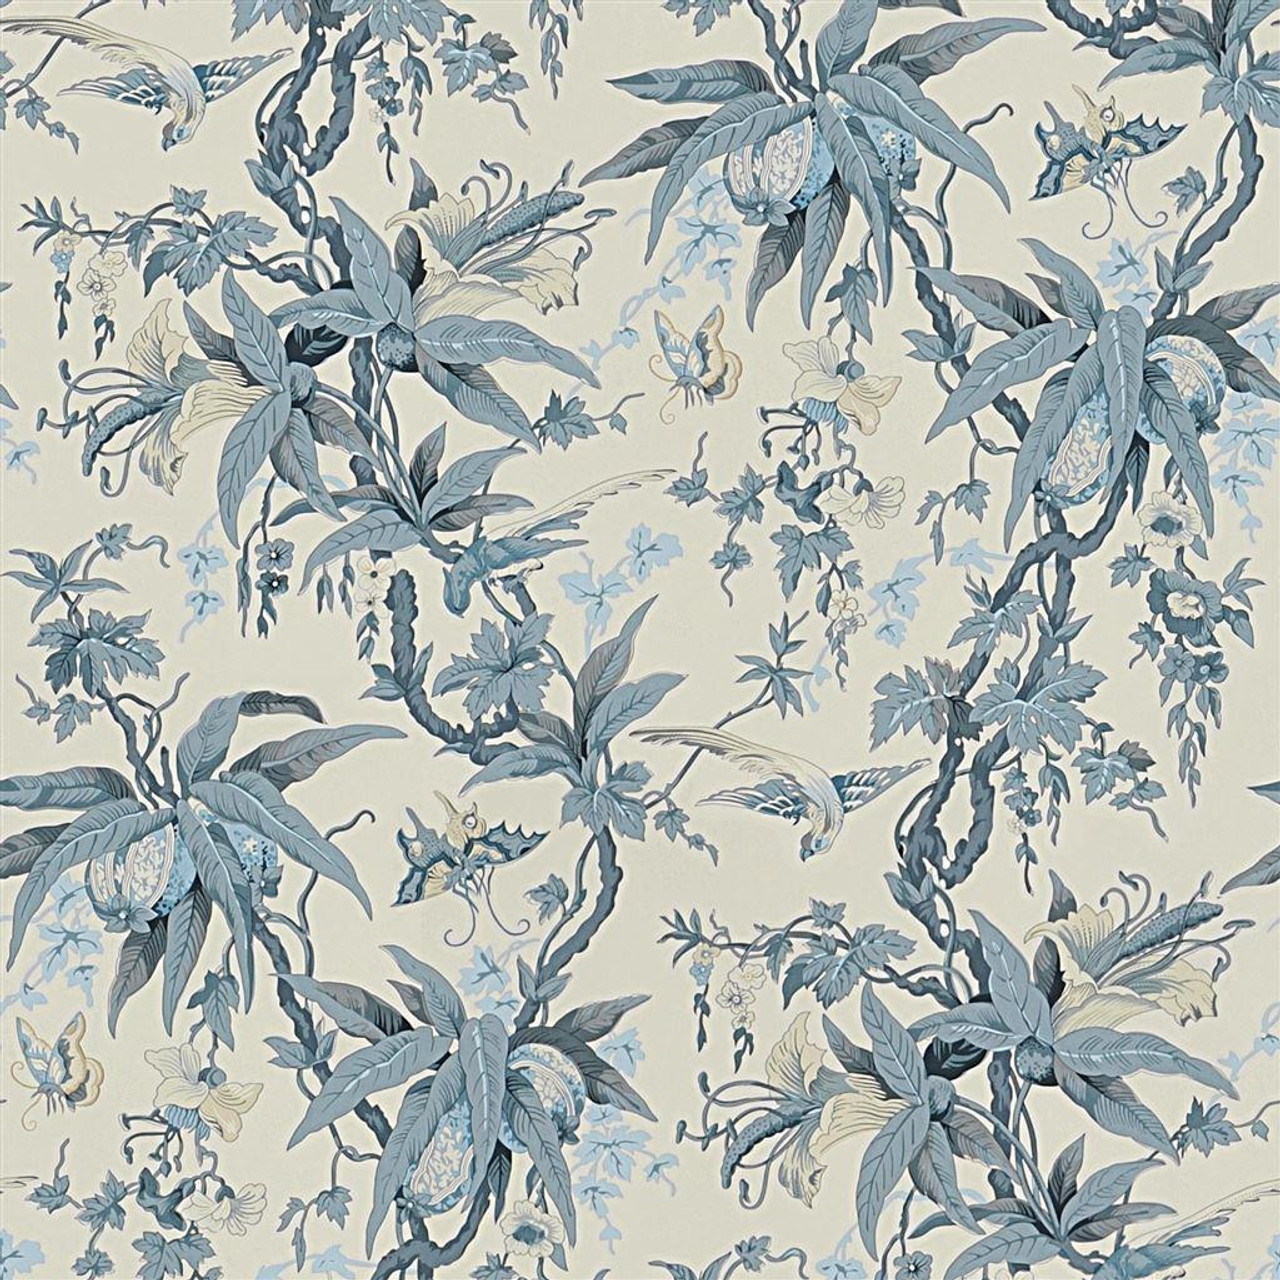 Ralph Lauren Mary Day Botanical Wallpaper Prl5023 01 Slate